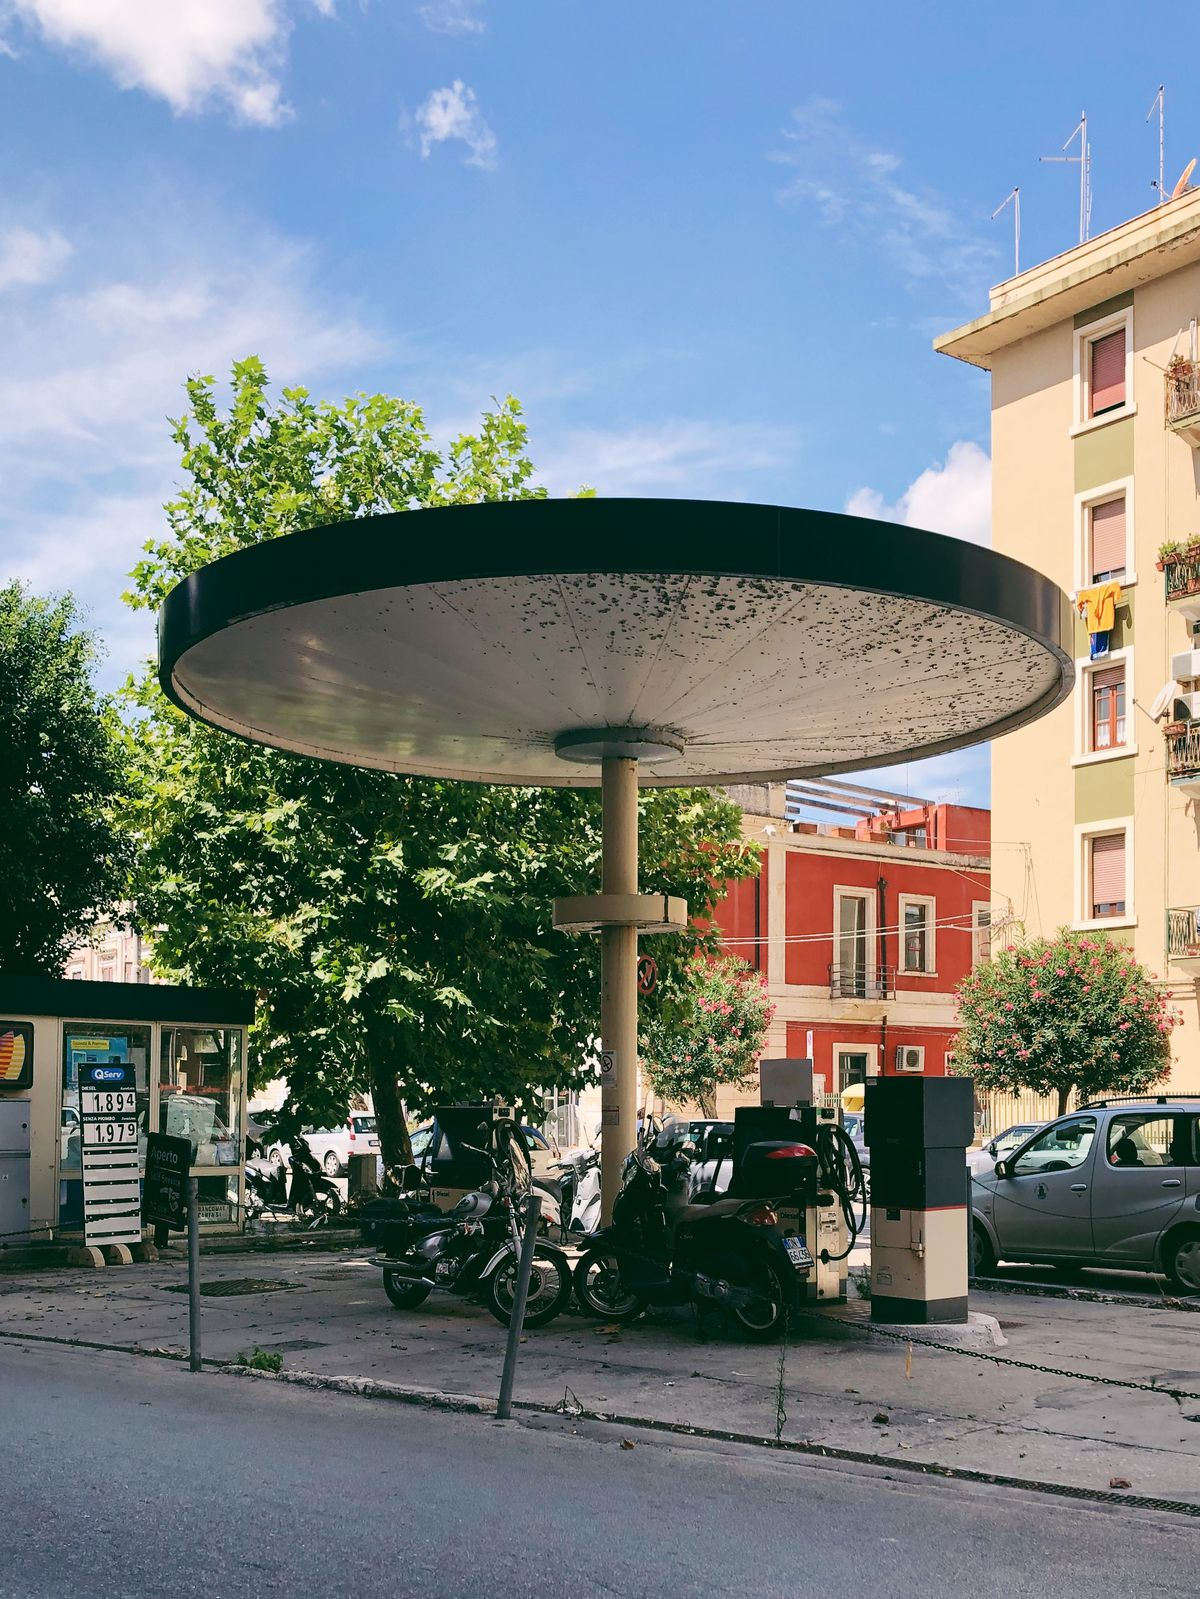 A round overhang provides shade to three motorcycles on the street.